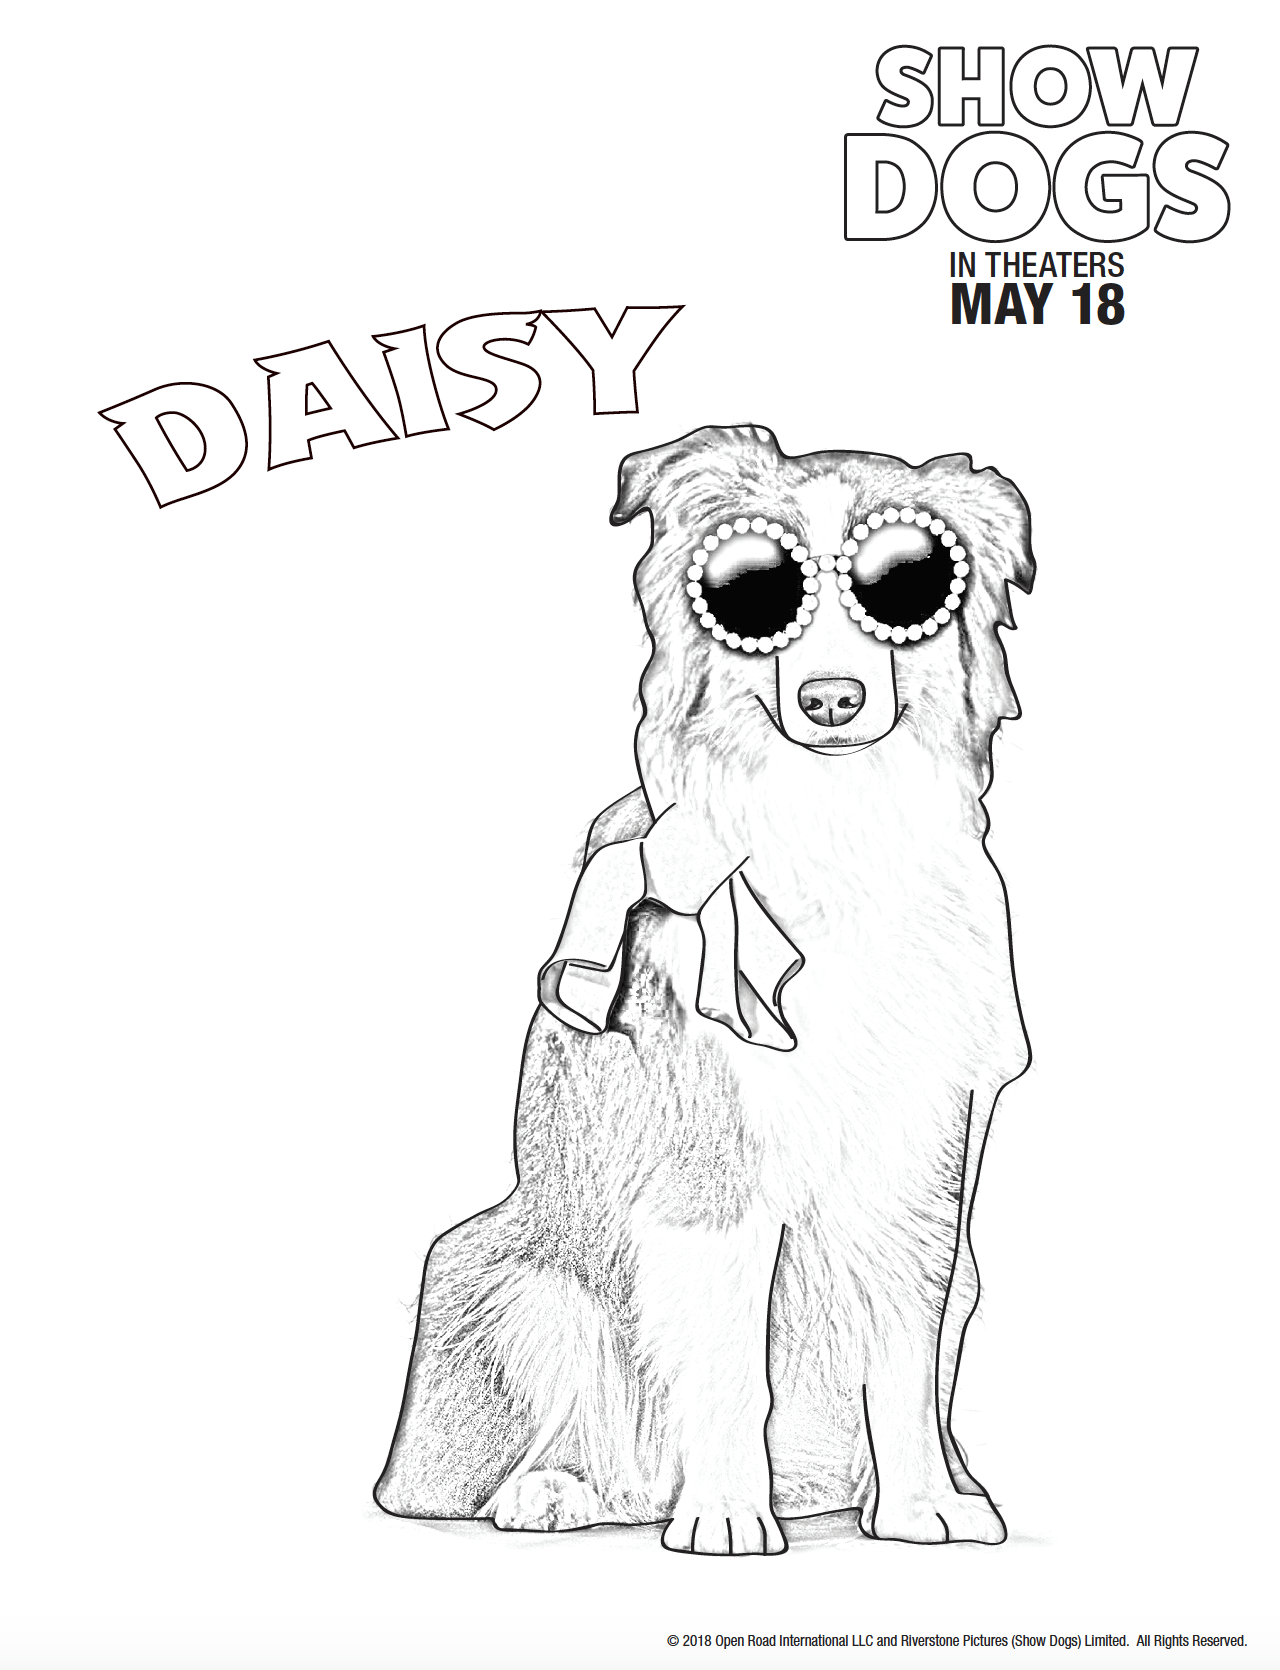 Free coloring pages for the show dogs movie dog coloring pages for kids ladyandtheblog